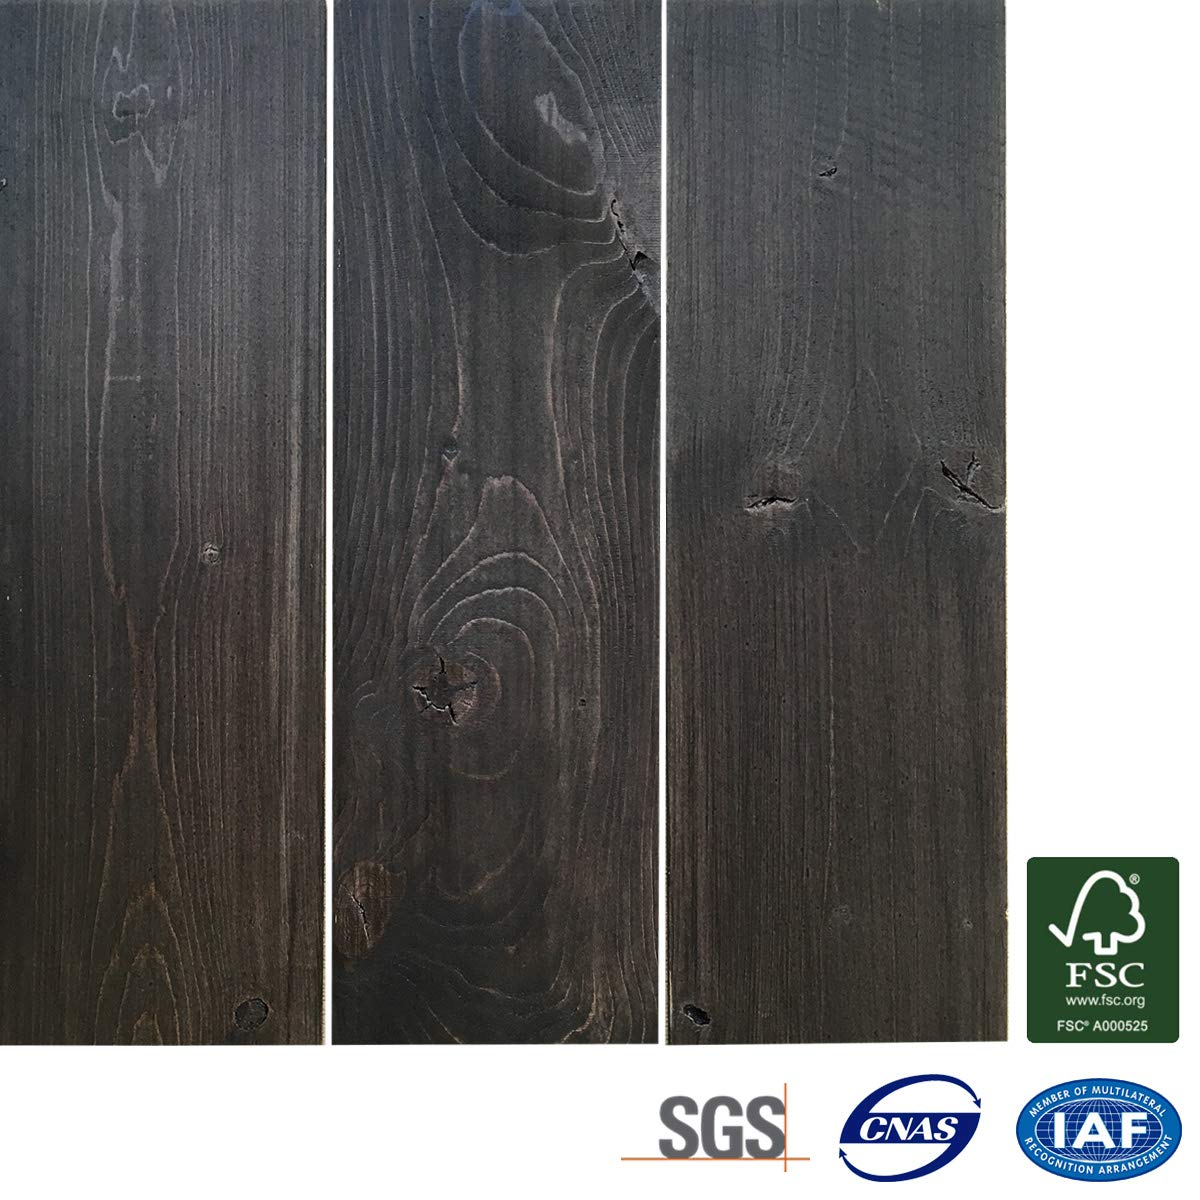 Wood Wall Panels DIY Easy Peel and Stick Wood Wall Paneling Solid Wood Planks 5 Wide-12.4 sq.ft, Grey Combination